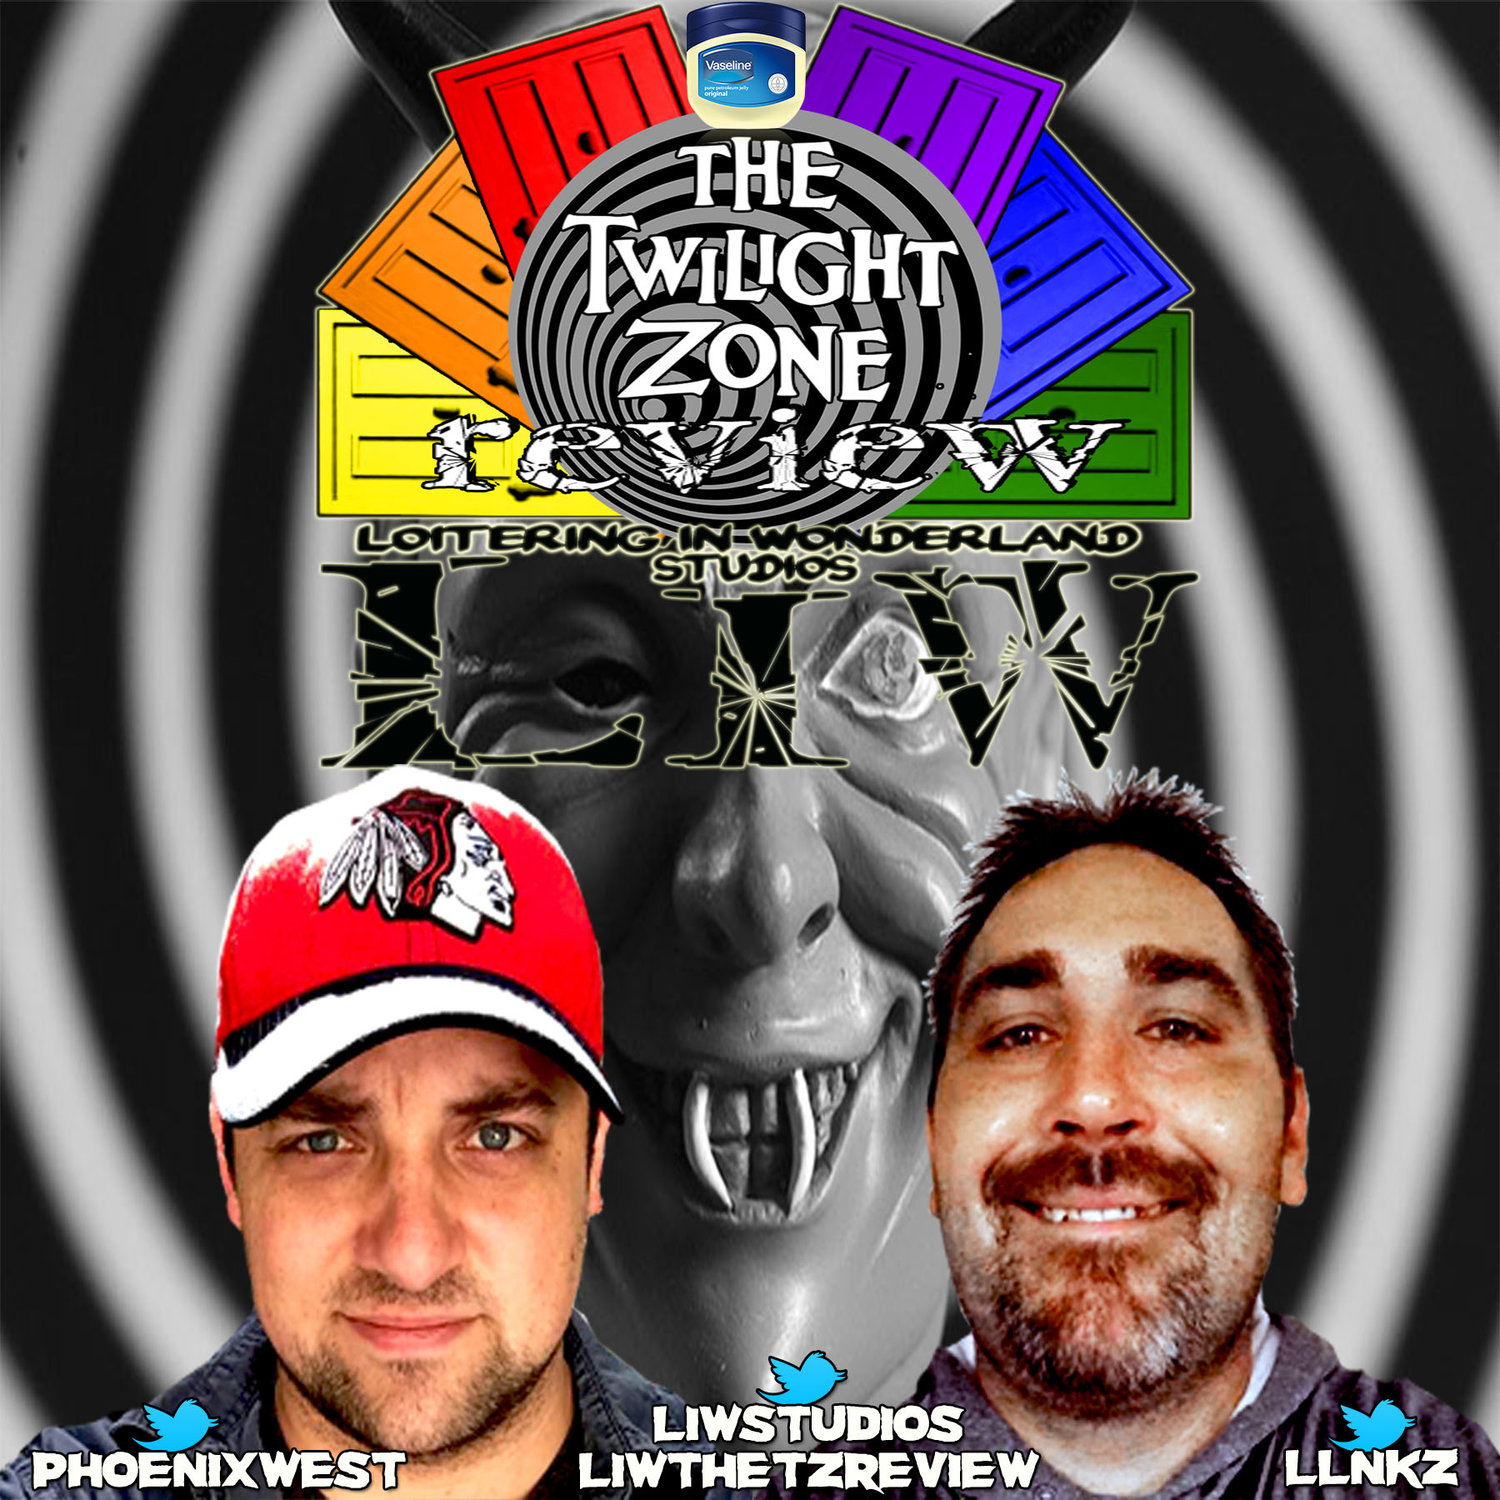 LIW The Twilight Zone Review